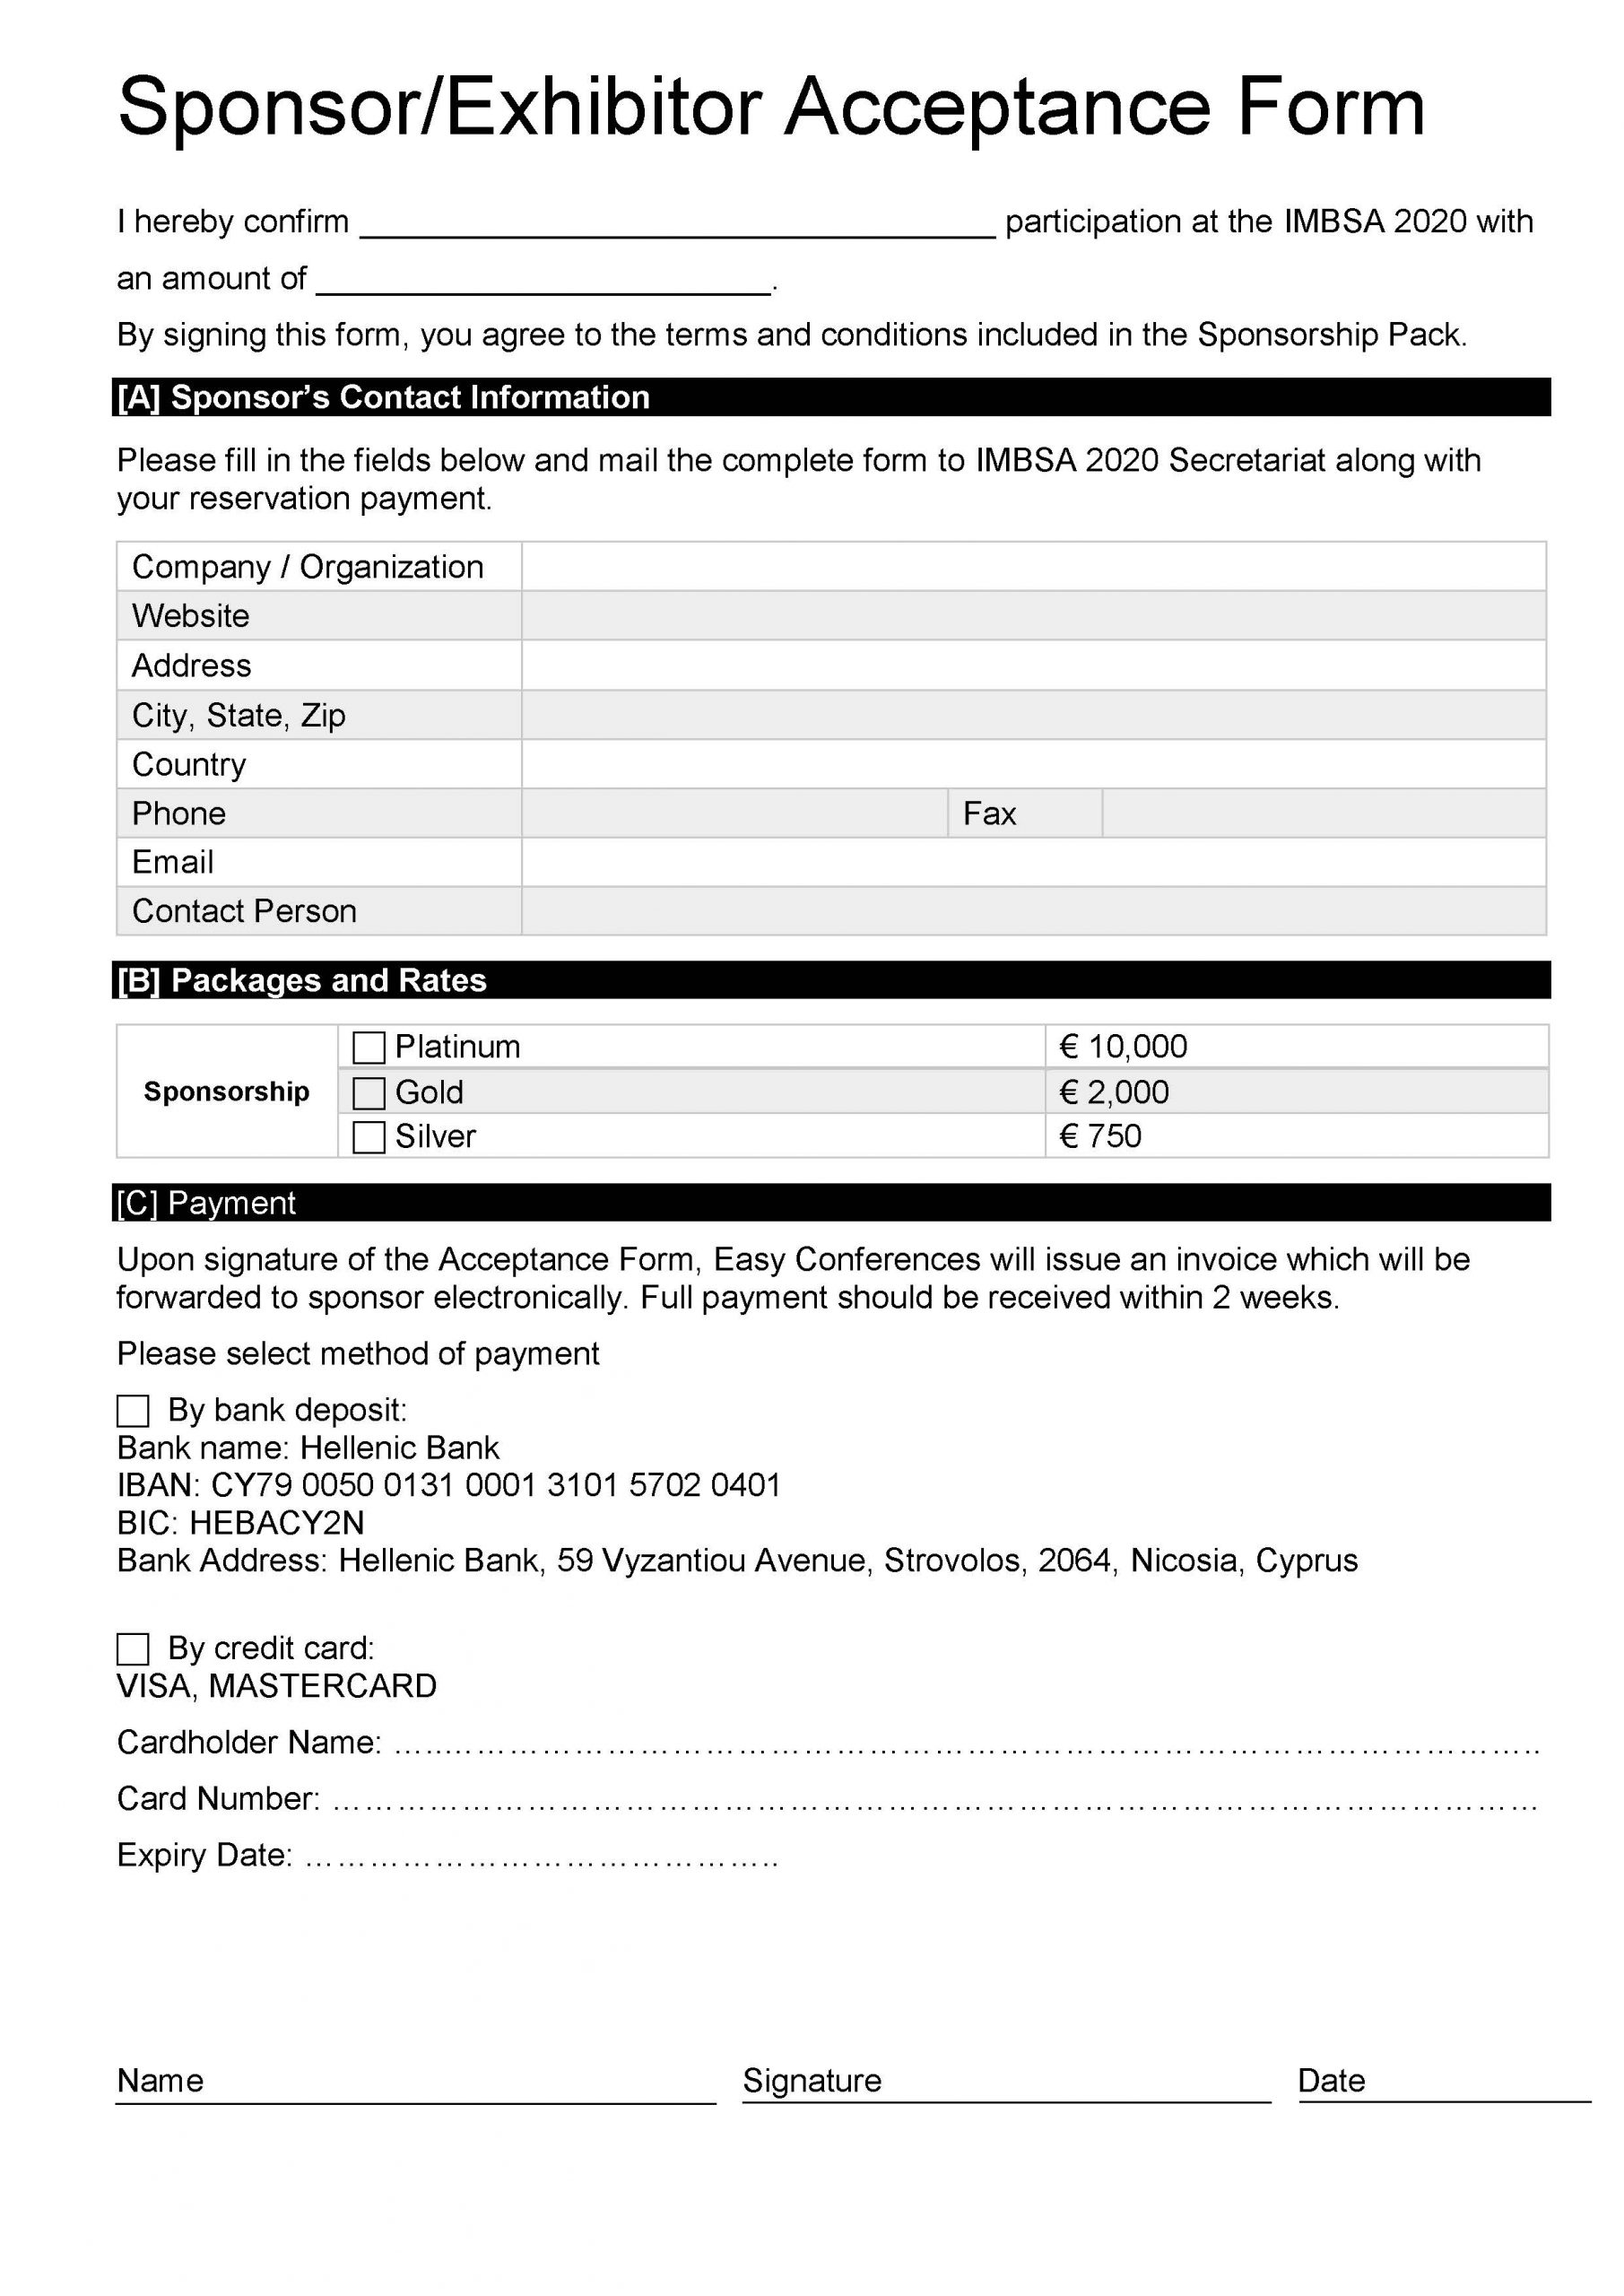 IMBSA 2020 Sponsorship Package_11 02 2020_Page_3